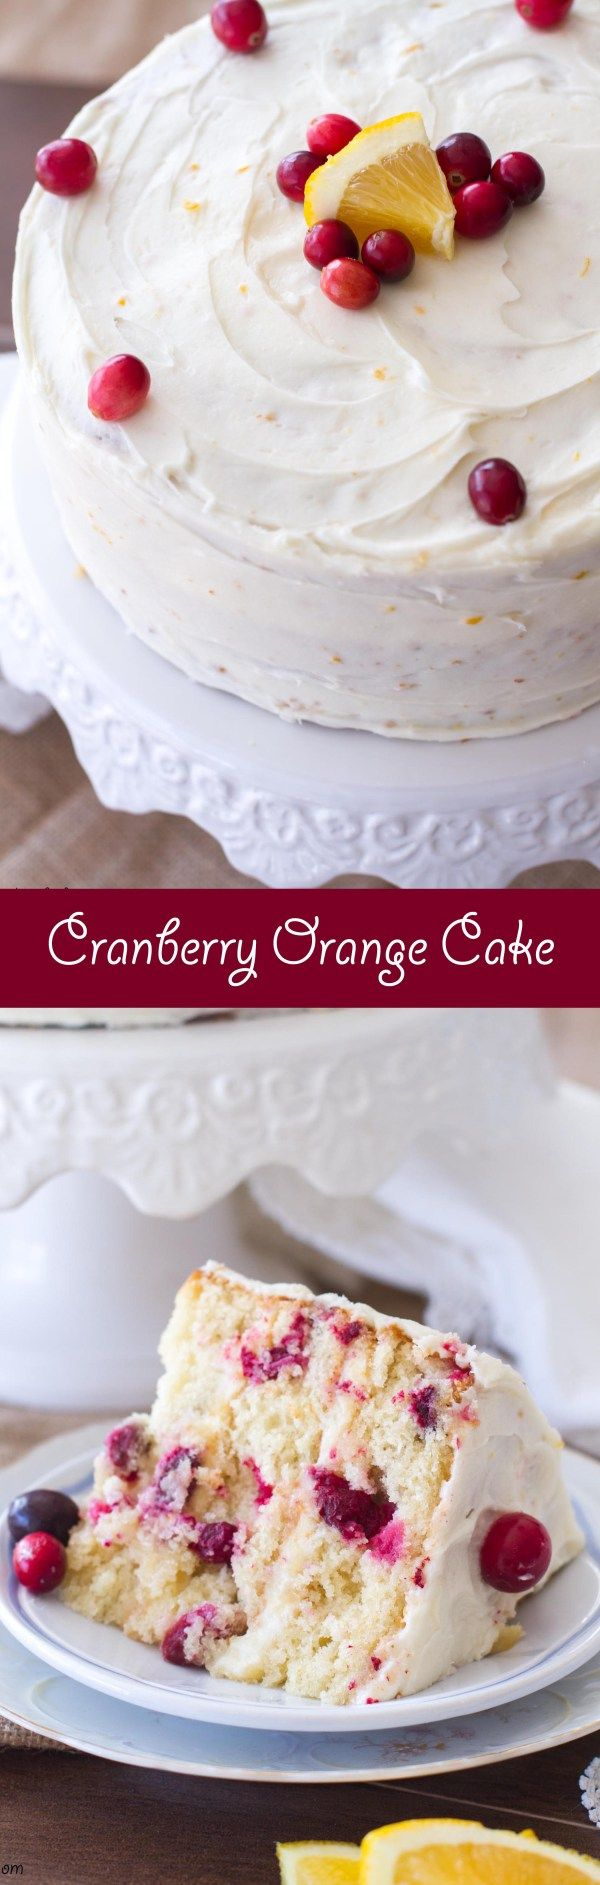 Cranberry Orange Cake by alattefood #Cake #Cranberry #Orange